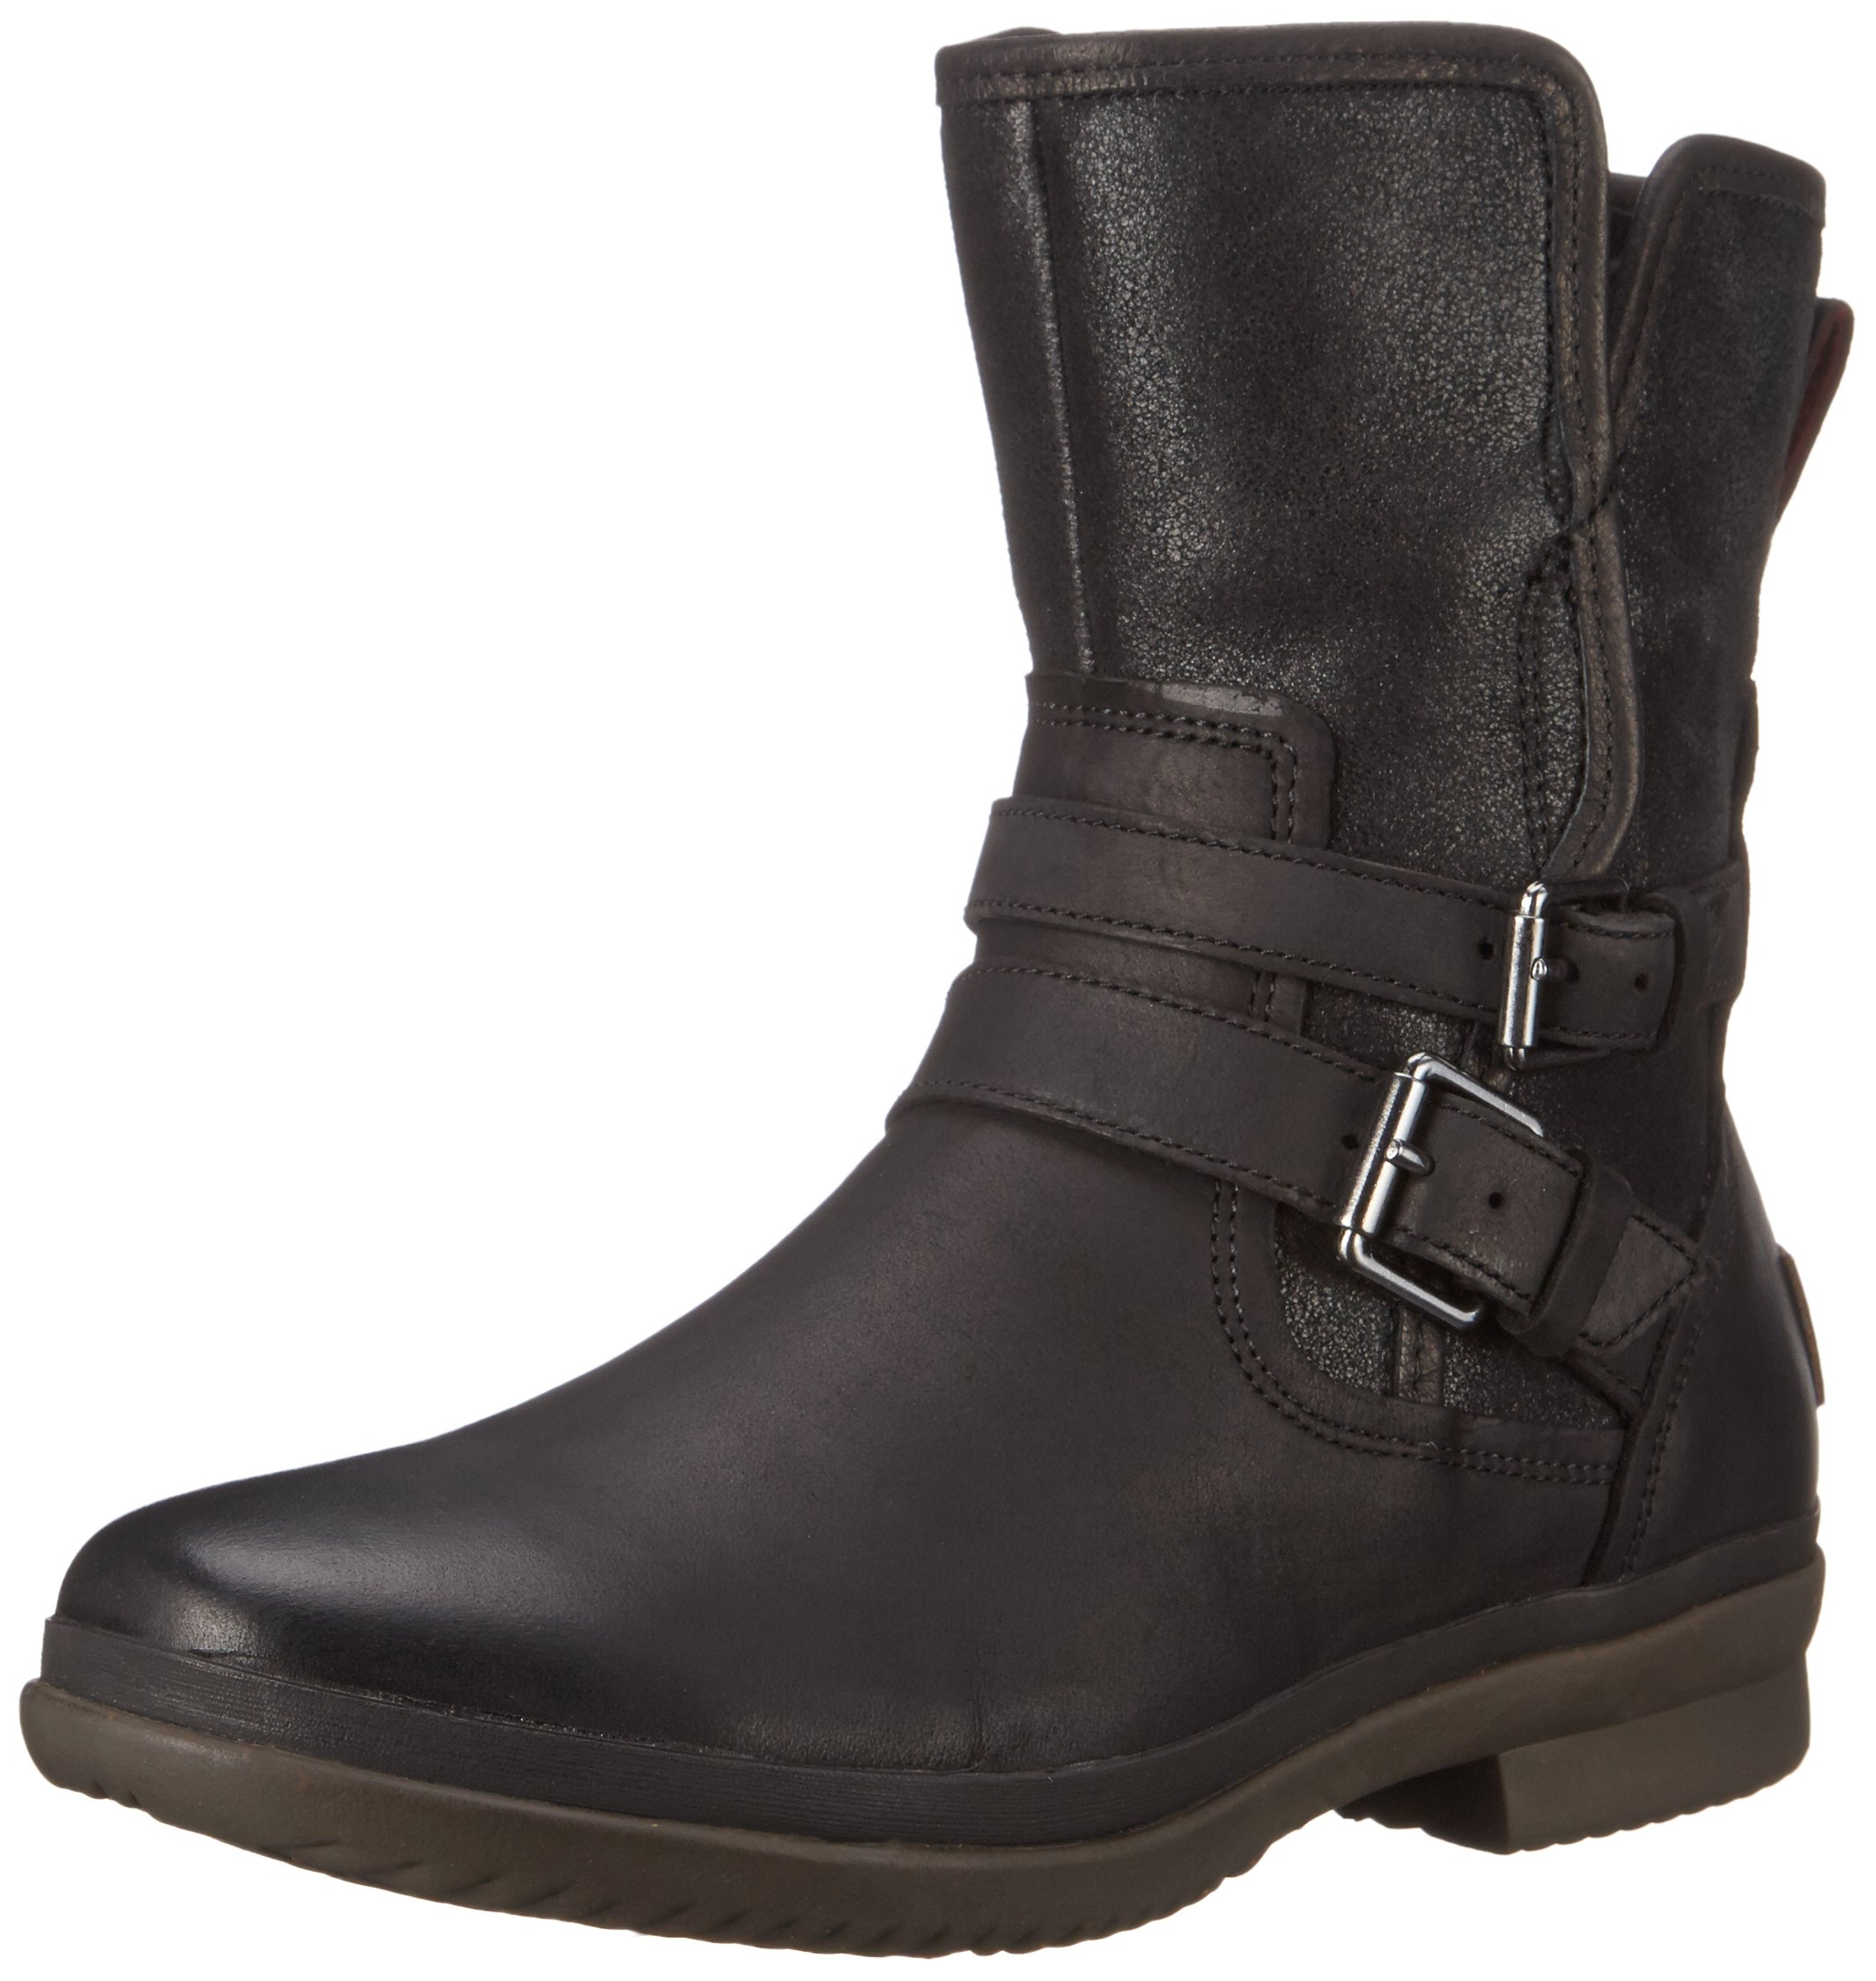 UGG Women's Simmens Leather Rain Boot, Black Leather - 7.5 B(M) US